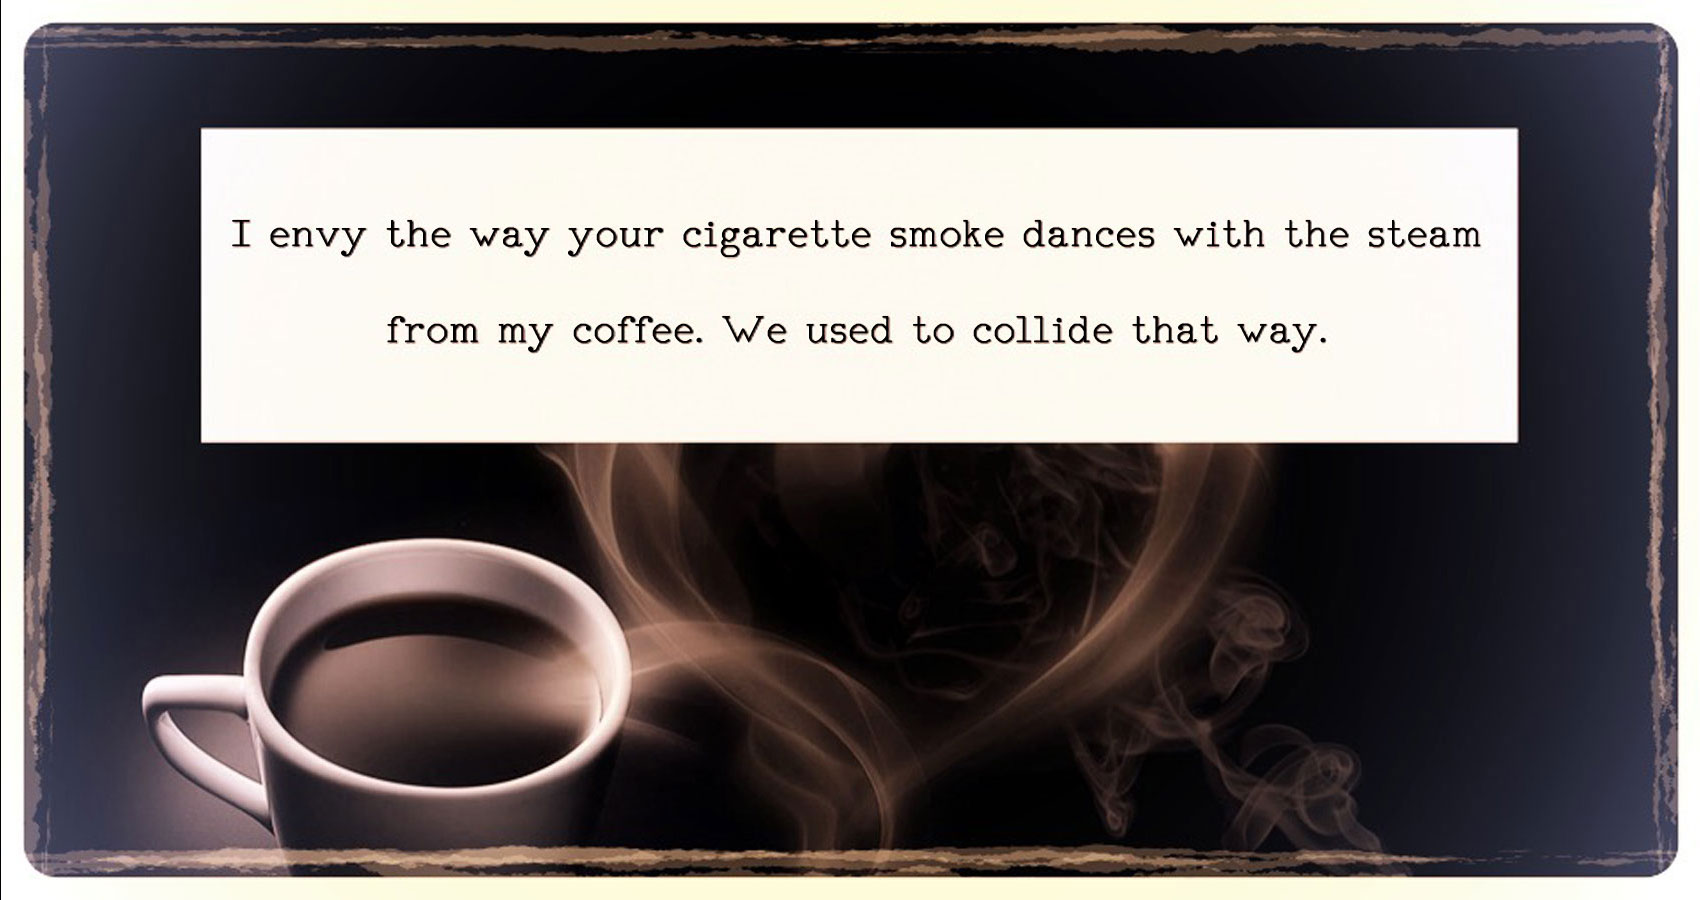 Collision, written by Kabrie Waters at Spillwords.com